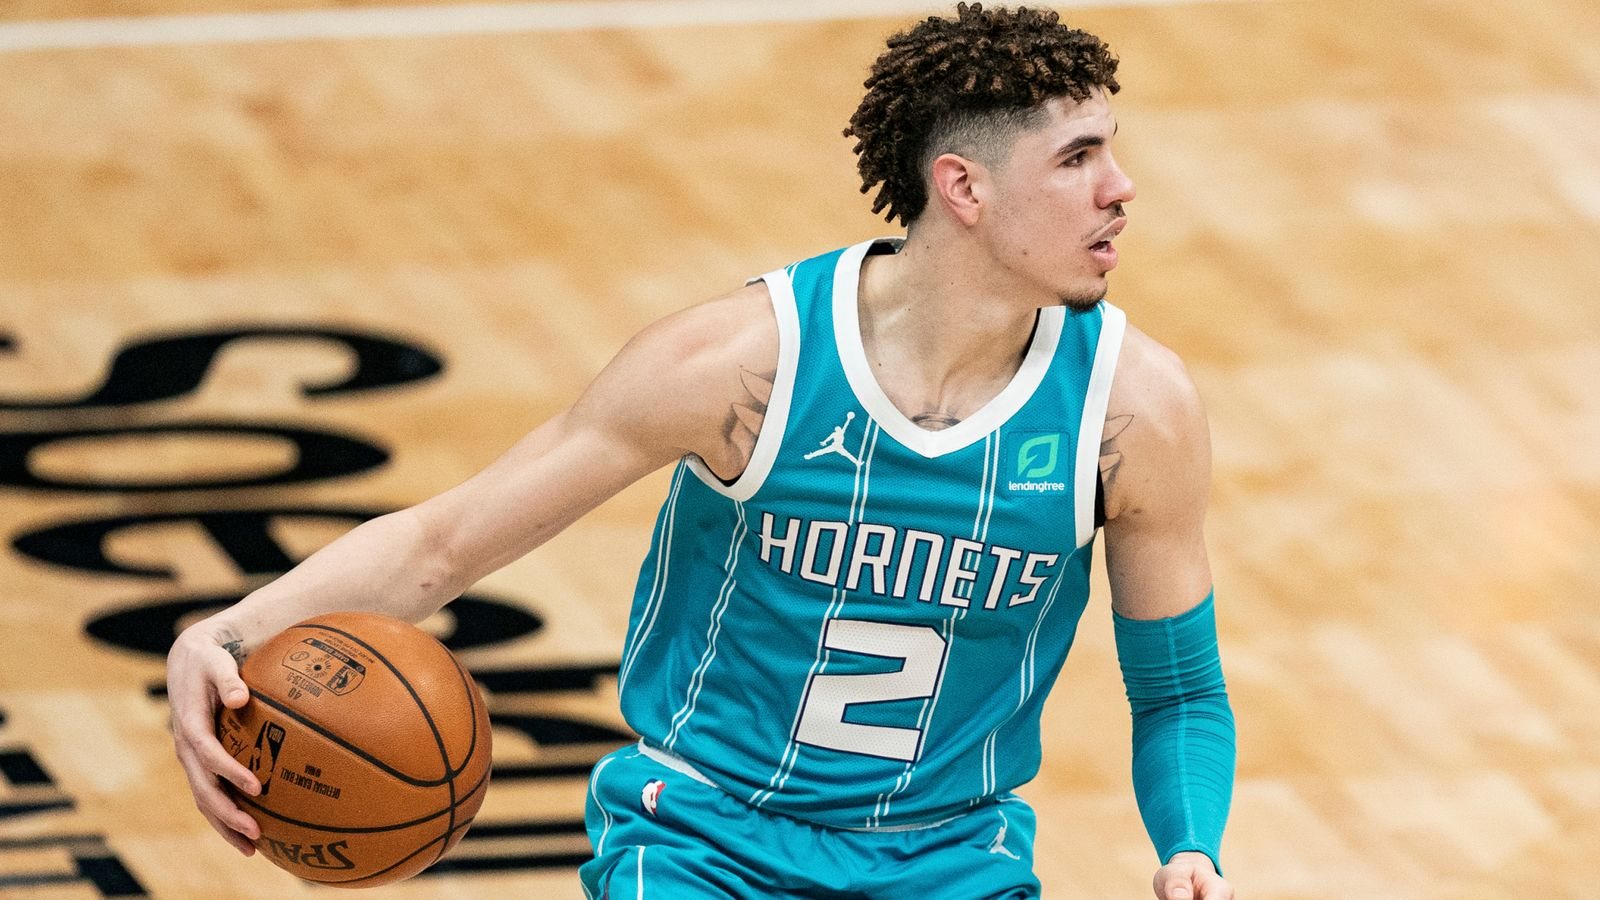 There's a good chance that LaMelo Ball will be in the conversation as one of the best point guards, so if you're looking into an NFT to invest in, this one is not a bad choice.